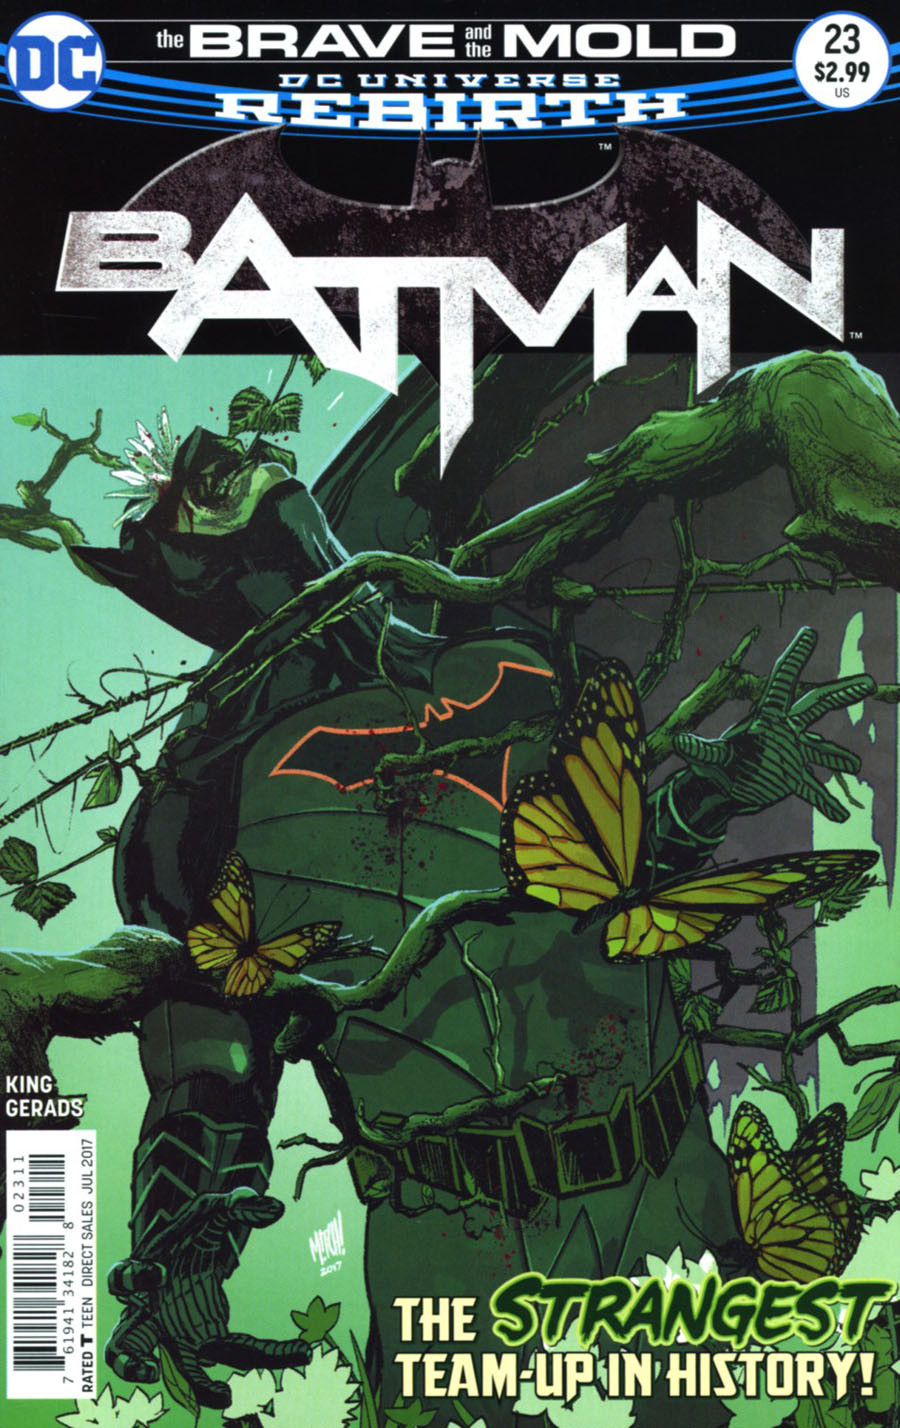 Batman 23 - The Brave and the Mold